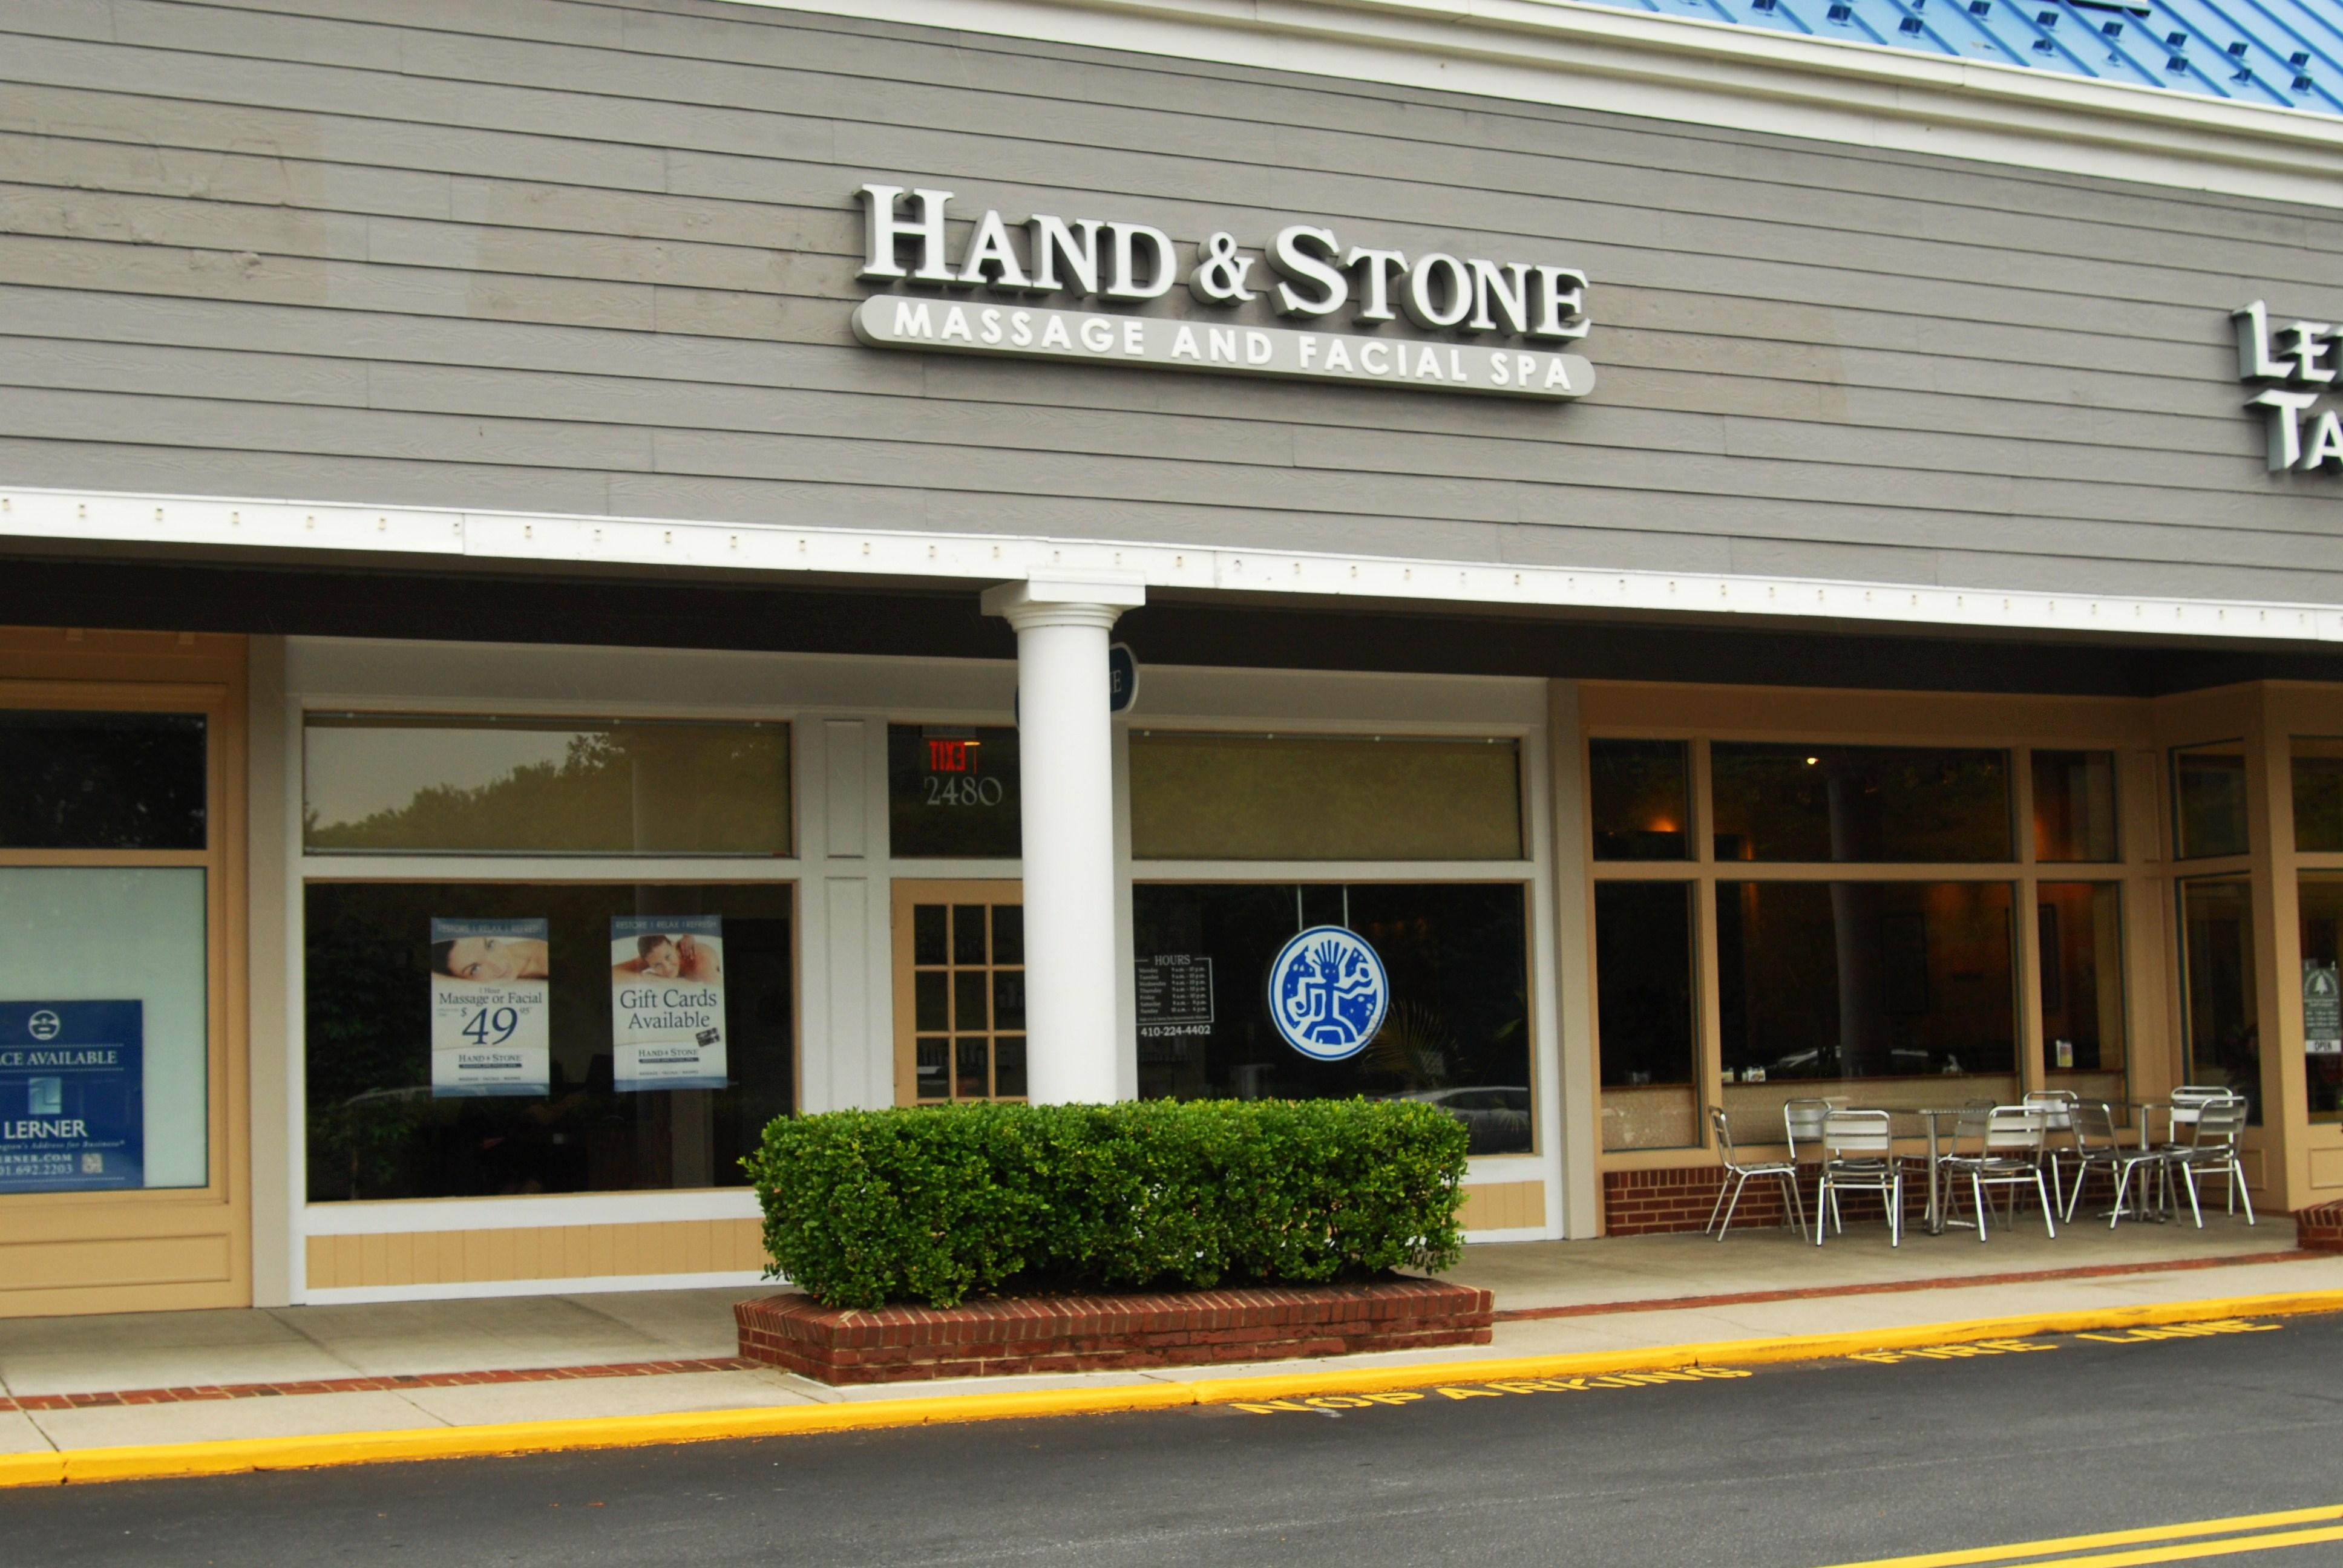 Spa in MD Annapolis 21401 Hand & Stone Massage and Facial Spa 2480 Solomon's Island Rd  (443)837-7726